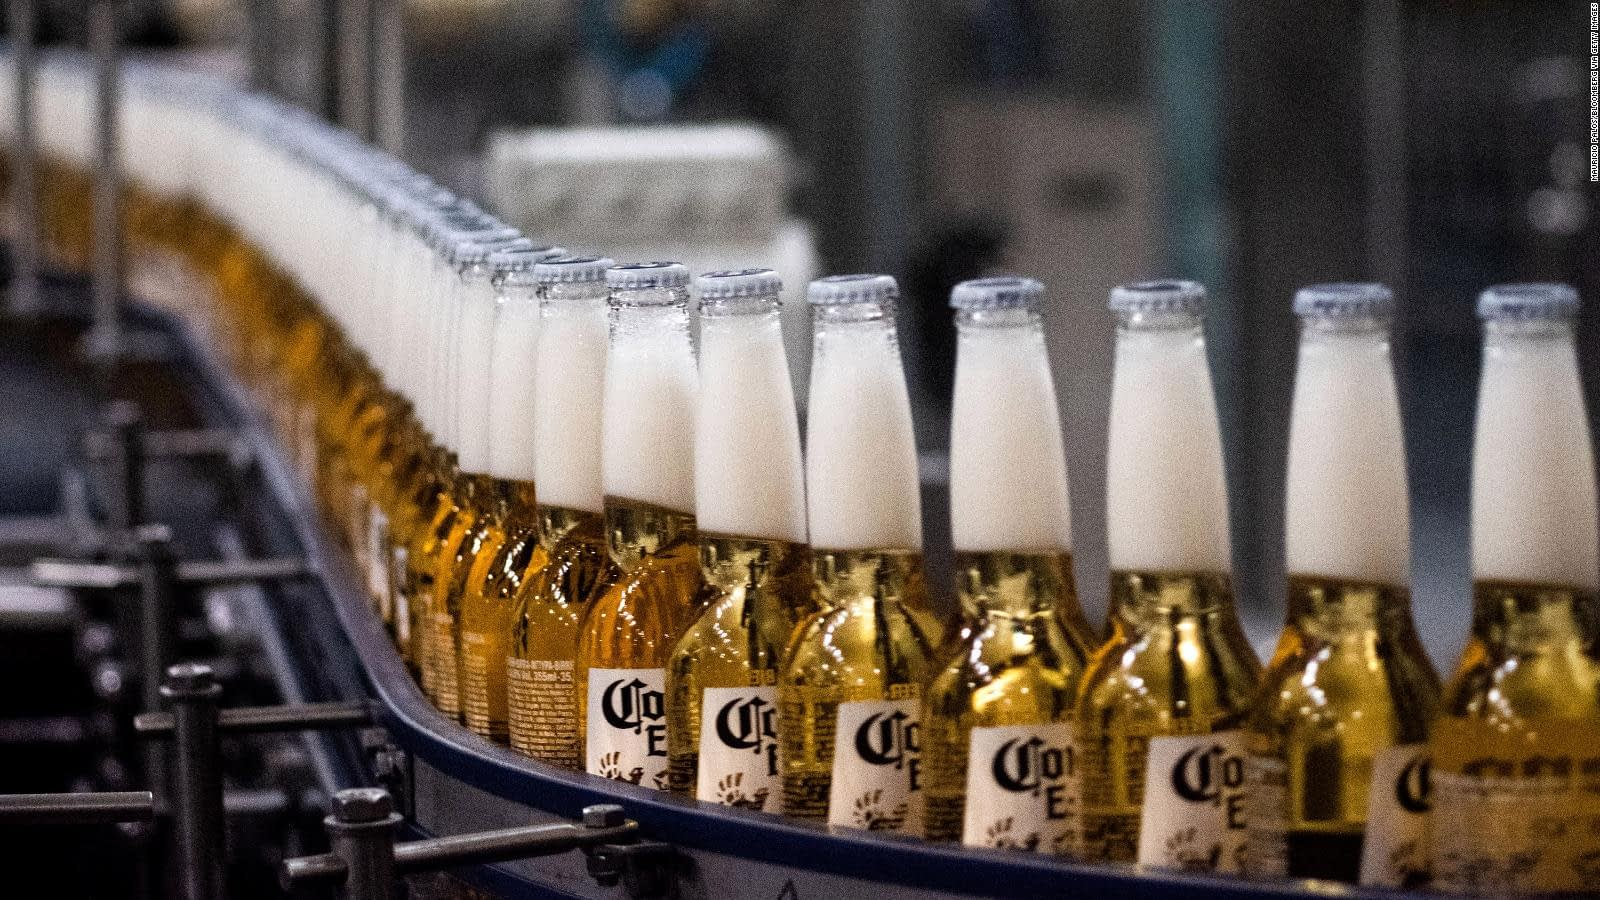 Sonora ranks fourth in beer production